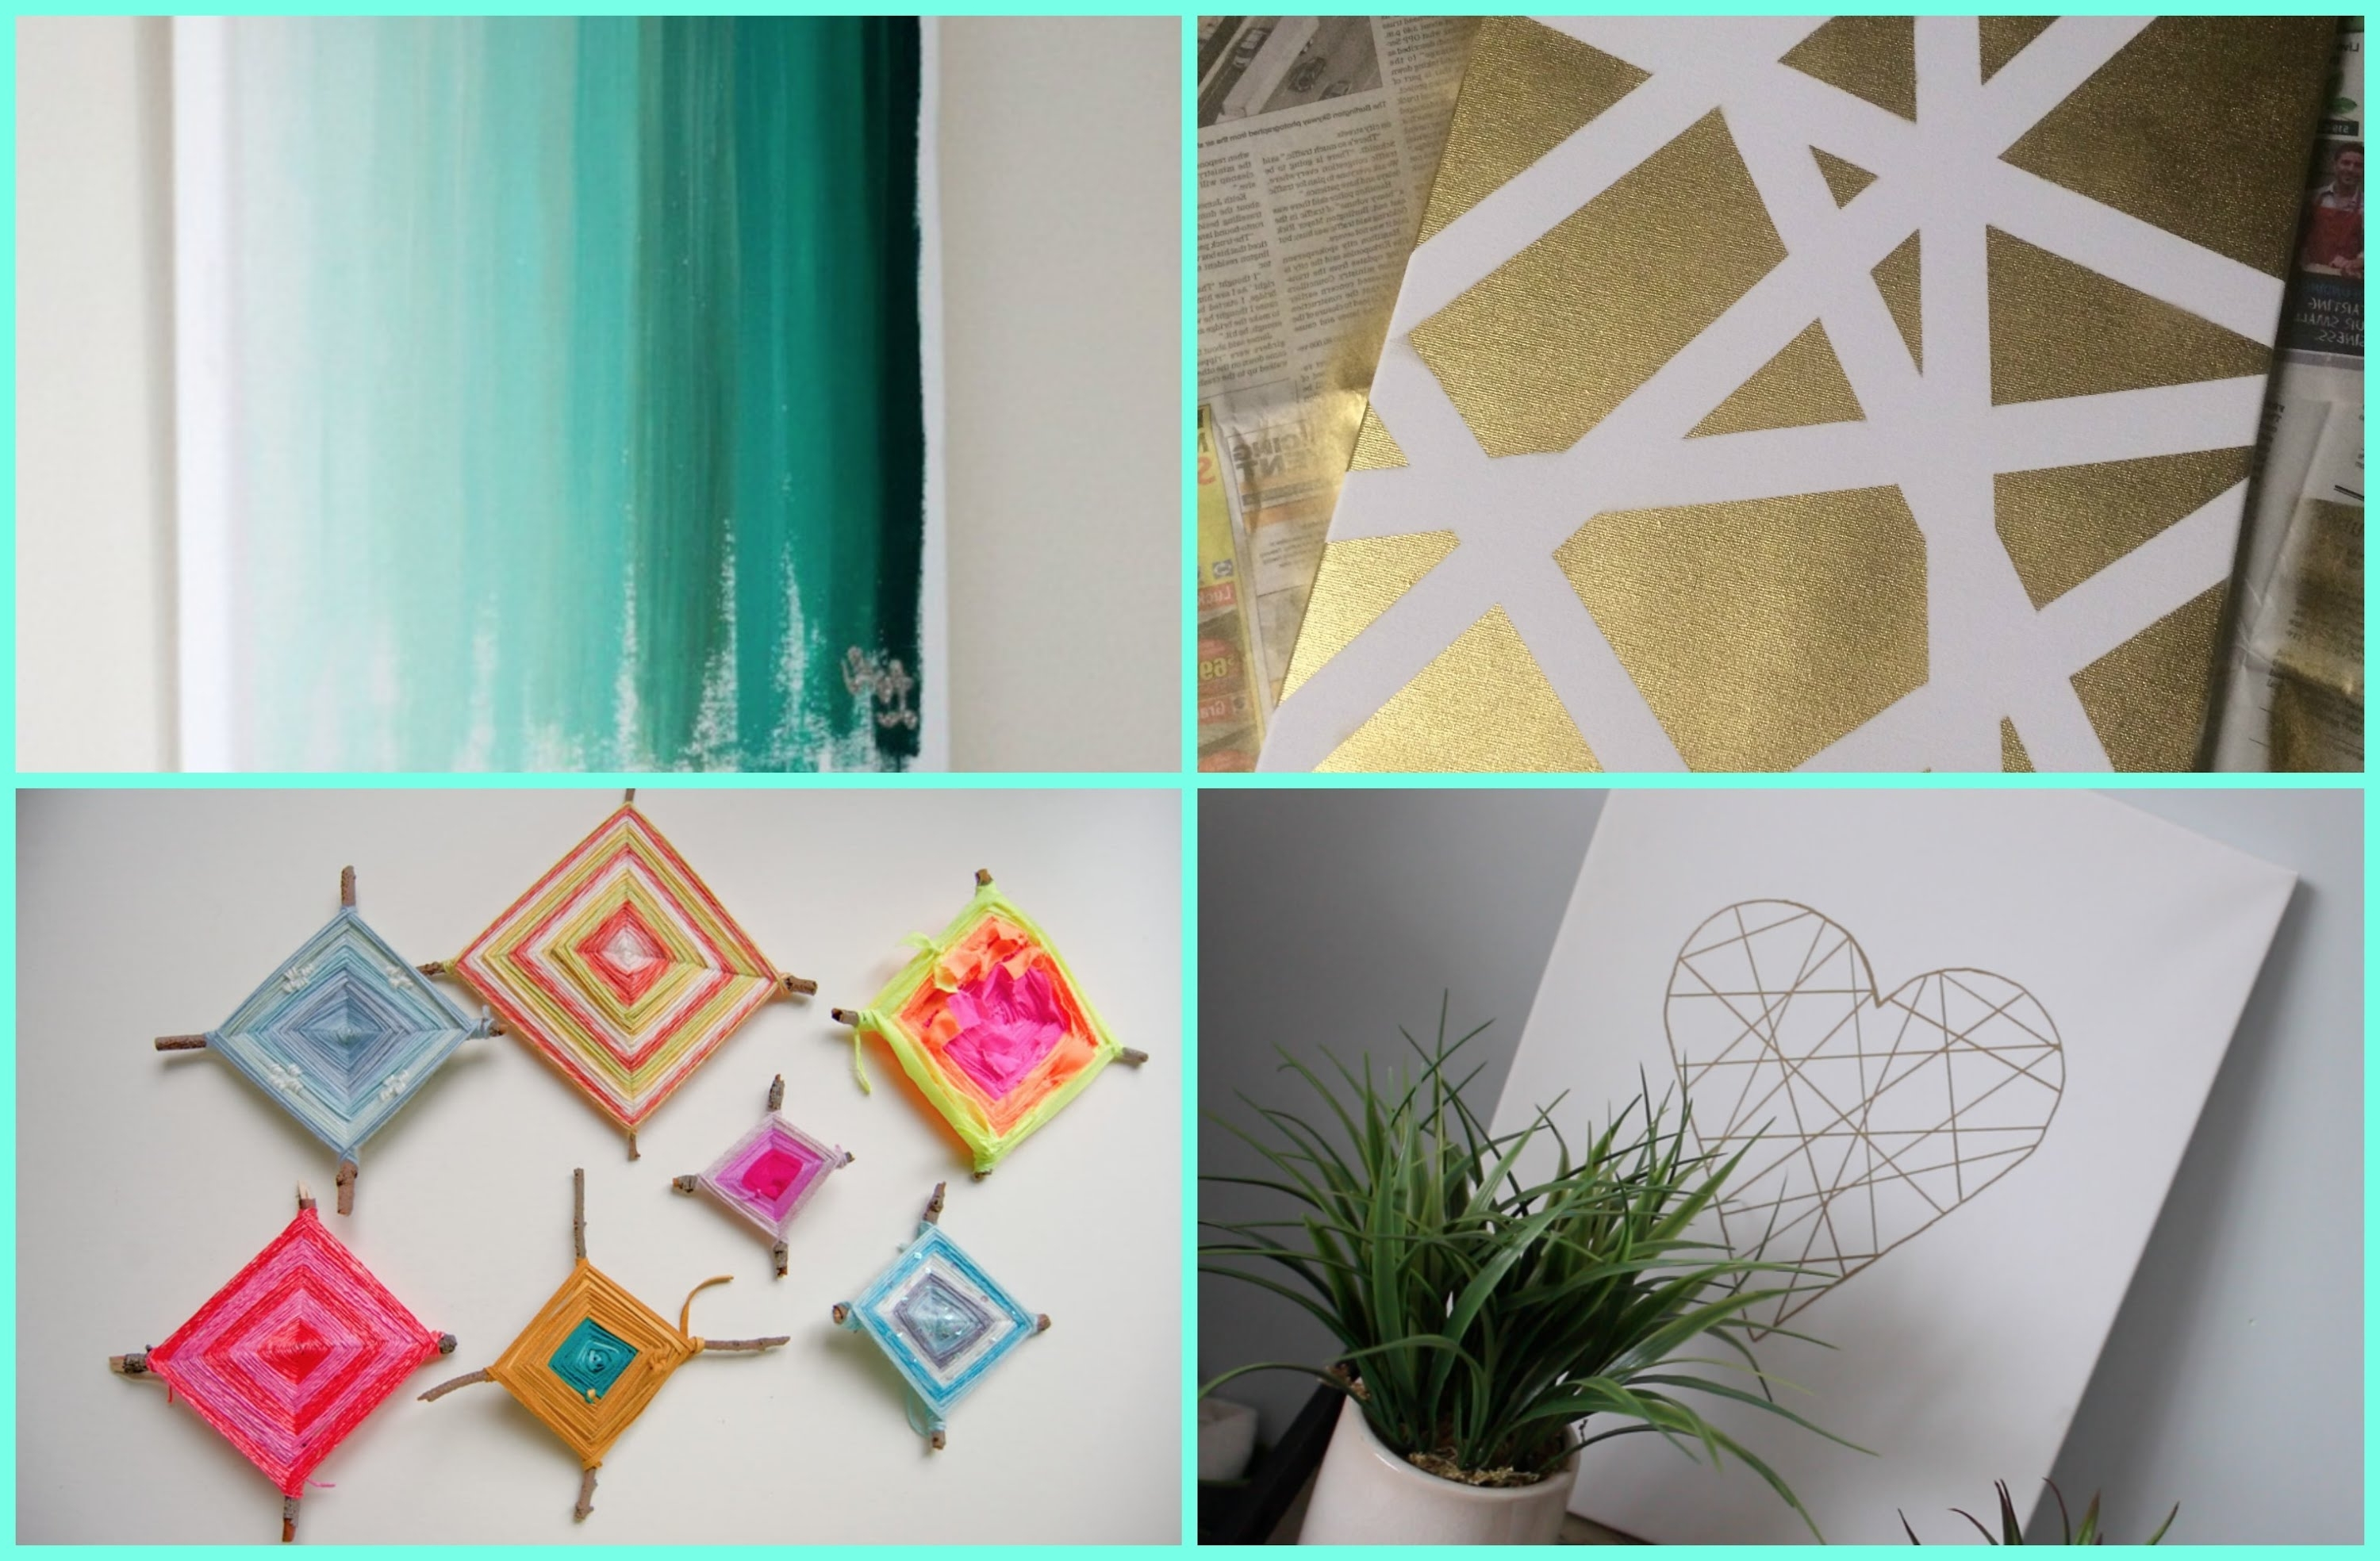 Recent Diy Dorm Room Decor: Wall Art – Youtube Throughout Wall Art Diy (View 2 of 15)